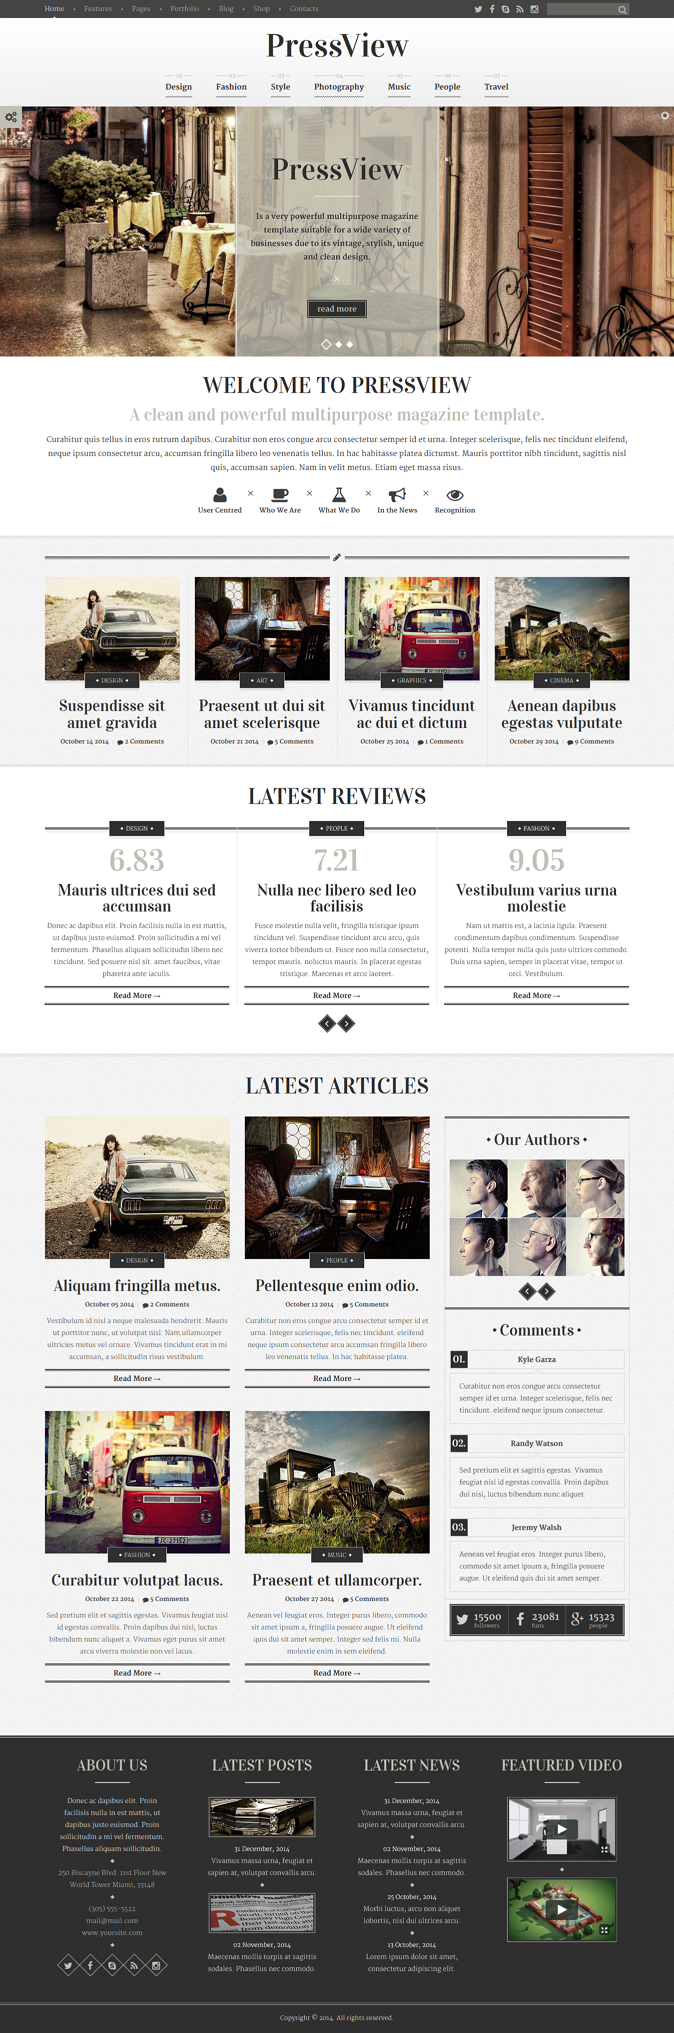 template applicable for newspapers, magazines, blogs, personal websites or any other type of sites.